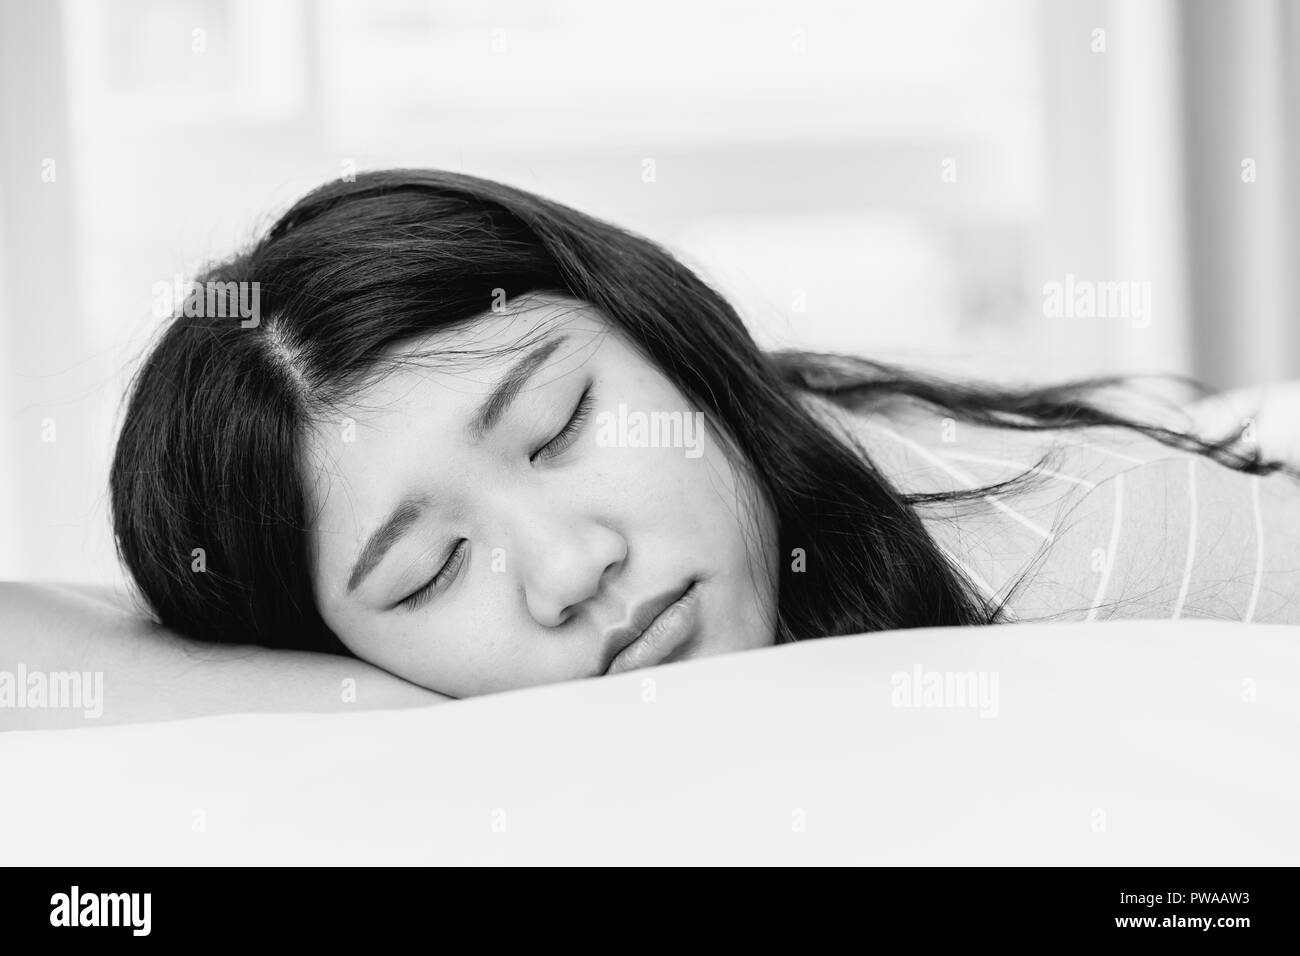 teen sleeping black and white monotone - Stock Image